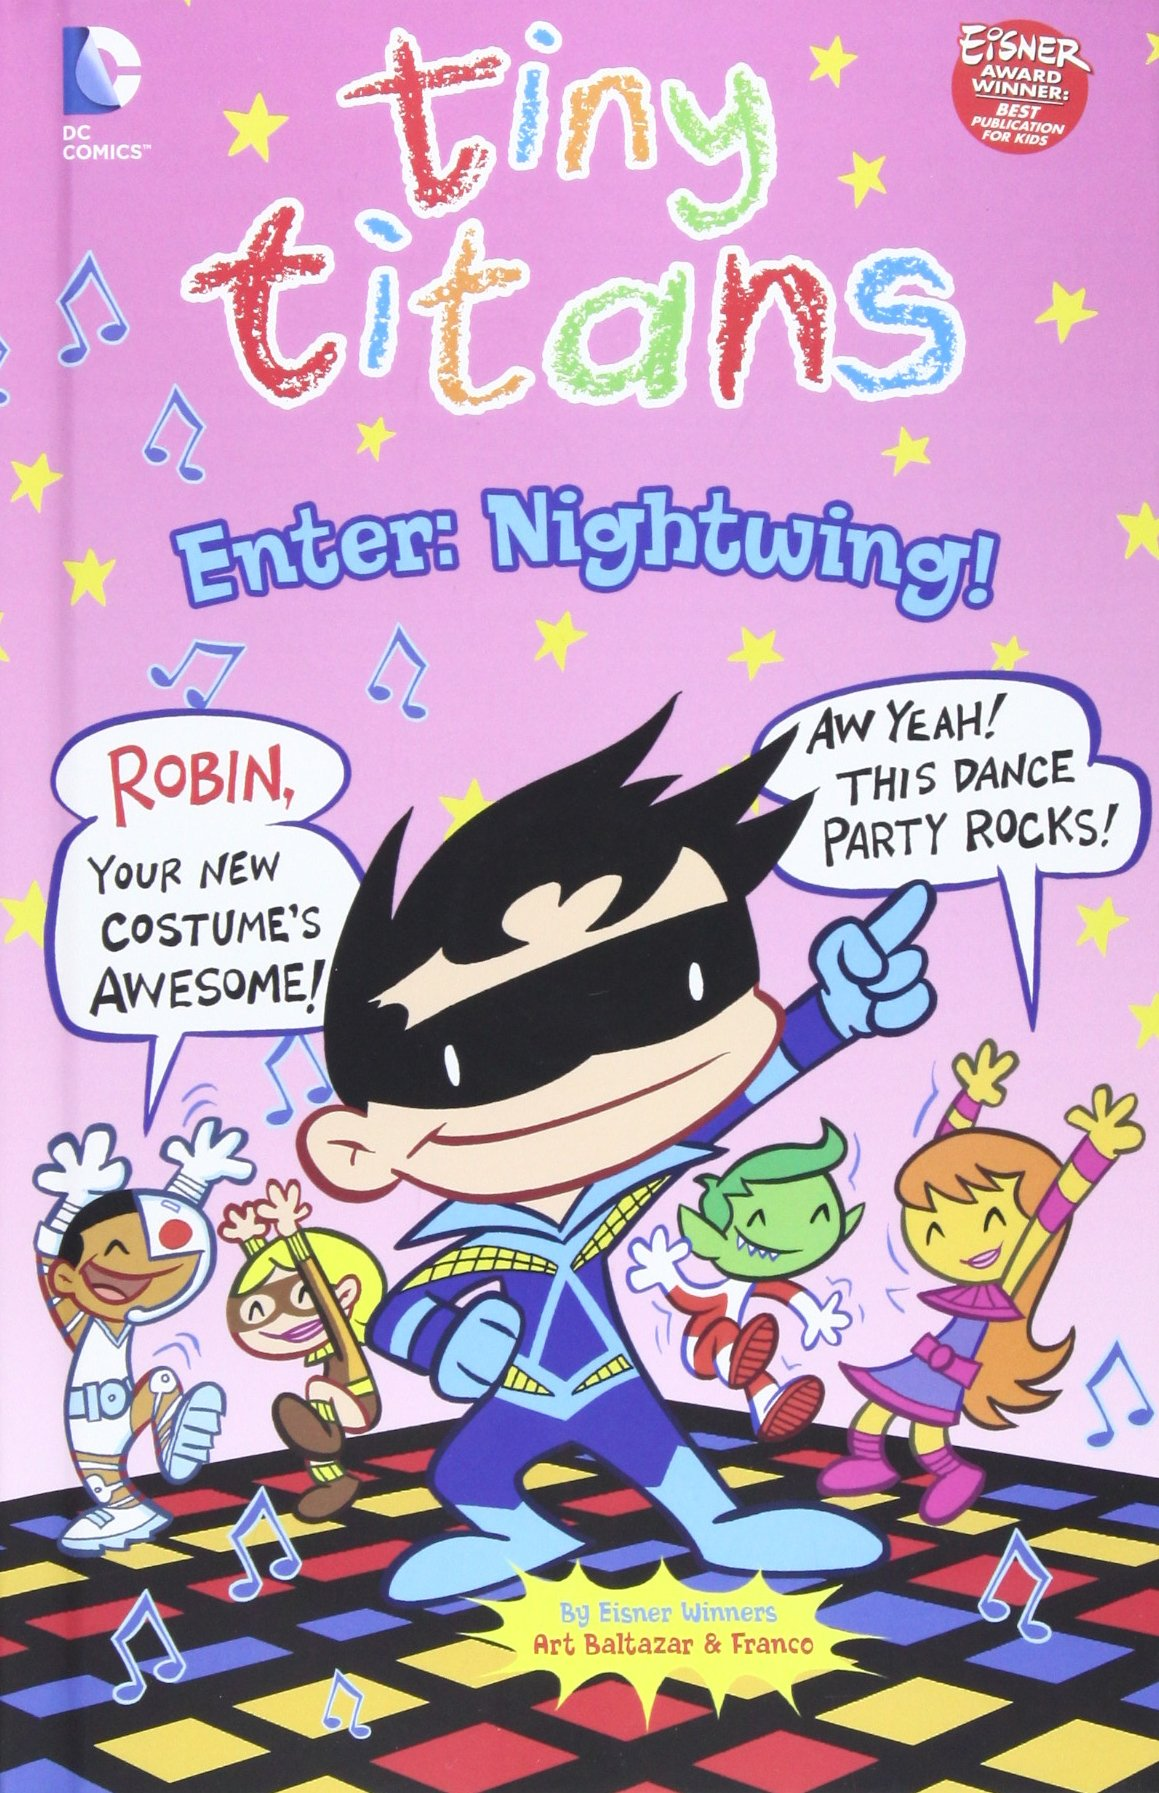 Read Online Enter: Nightwing! (Tiny Titans) ebook